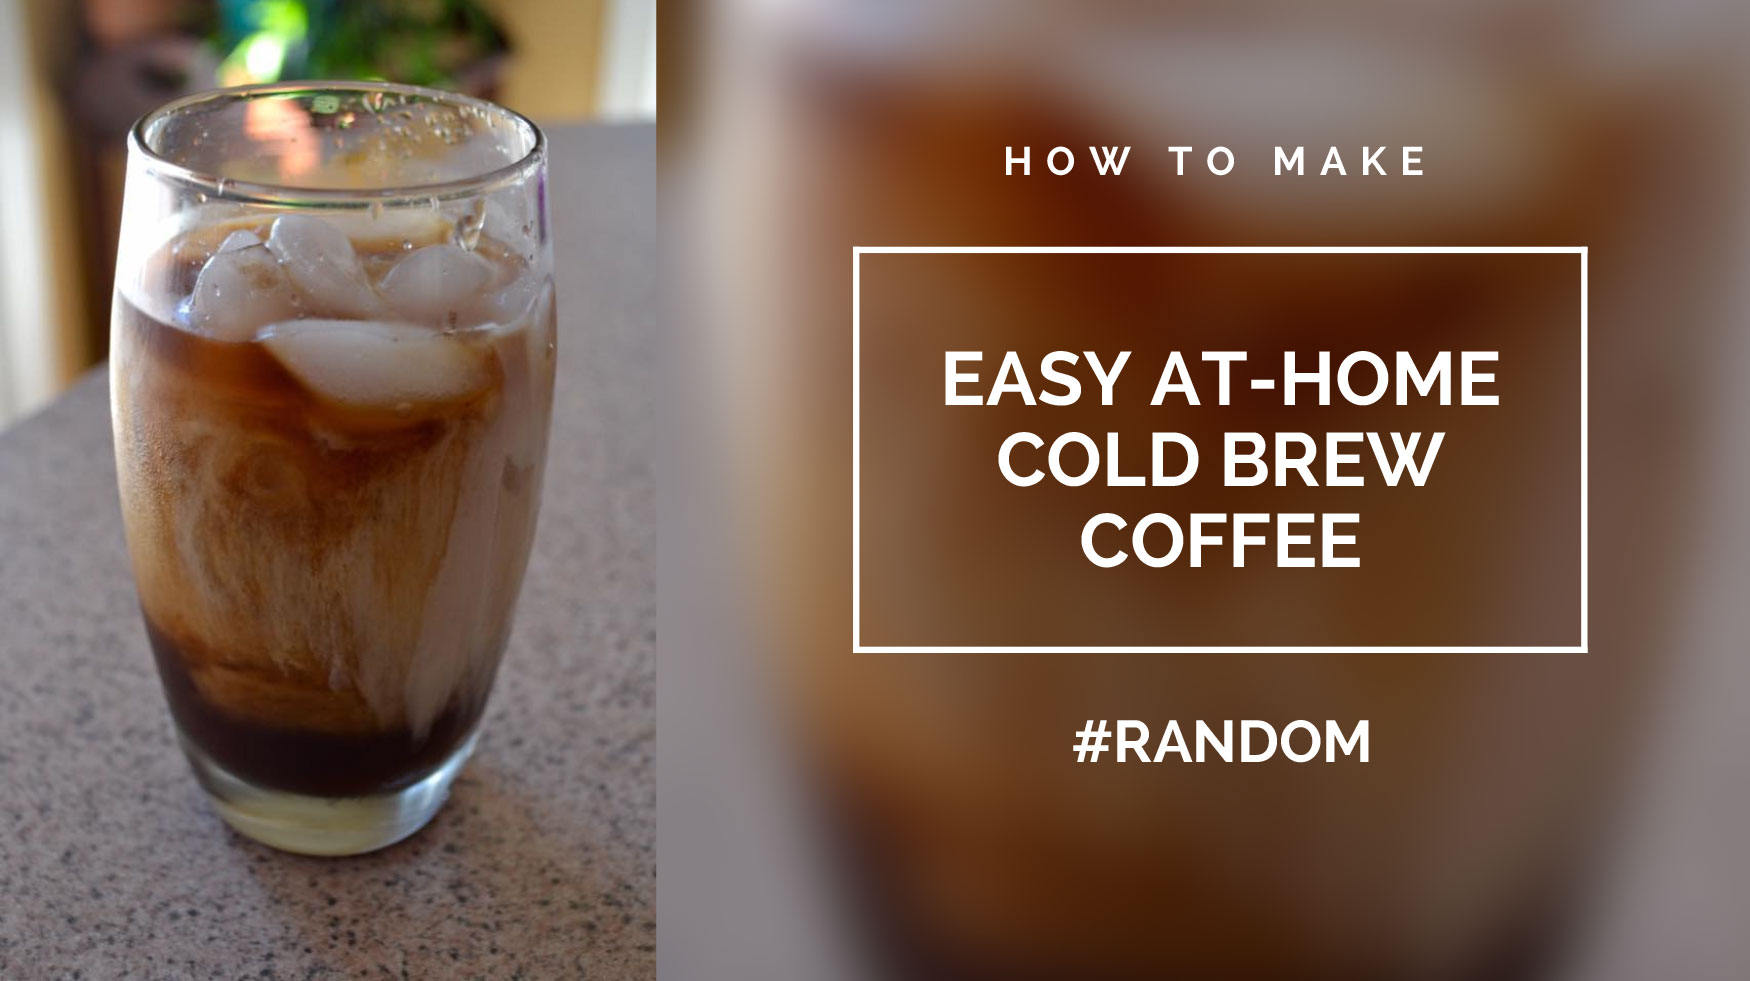 Easy At-Home Cold Brew Coffee